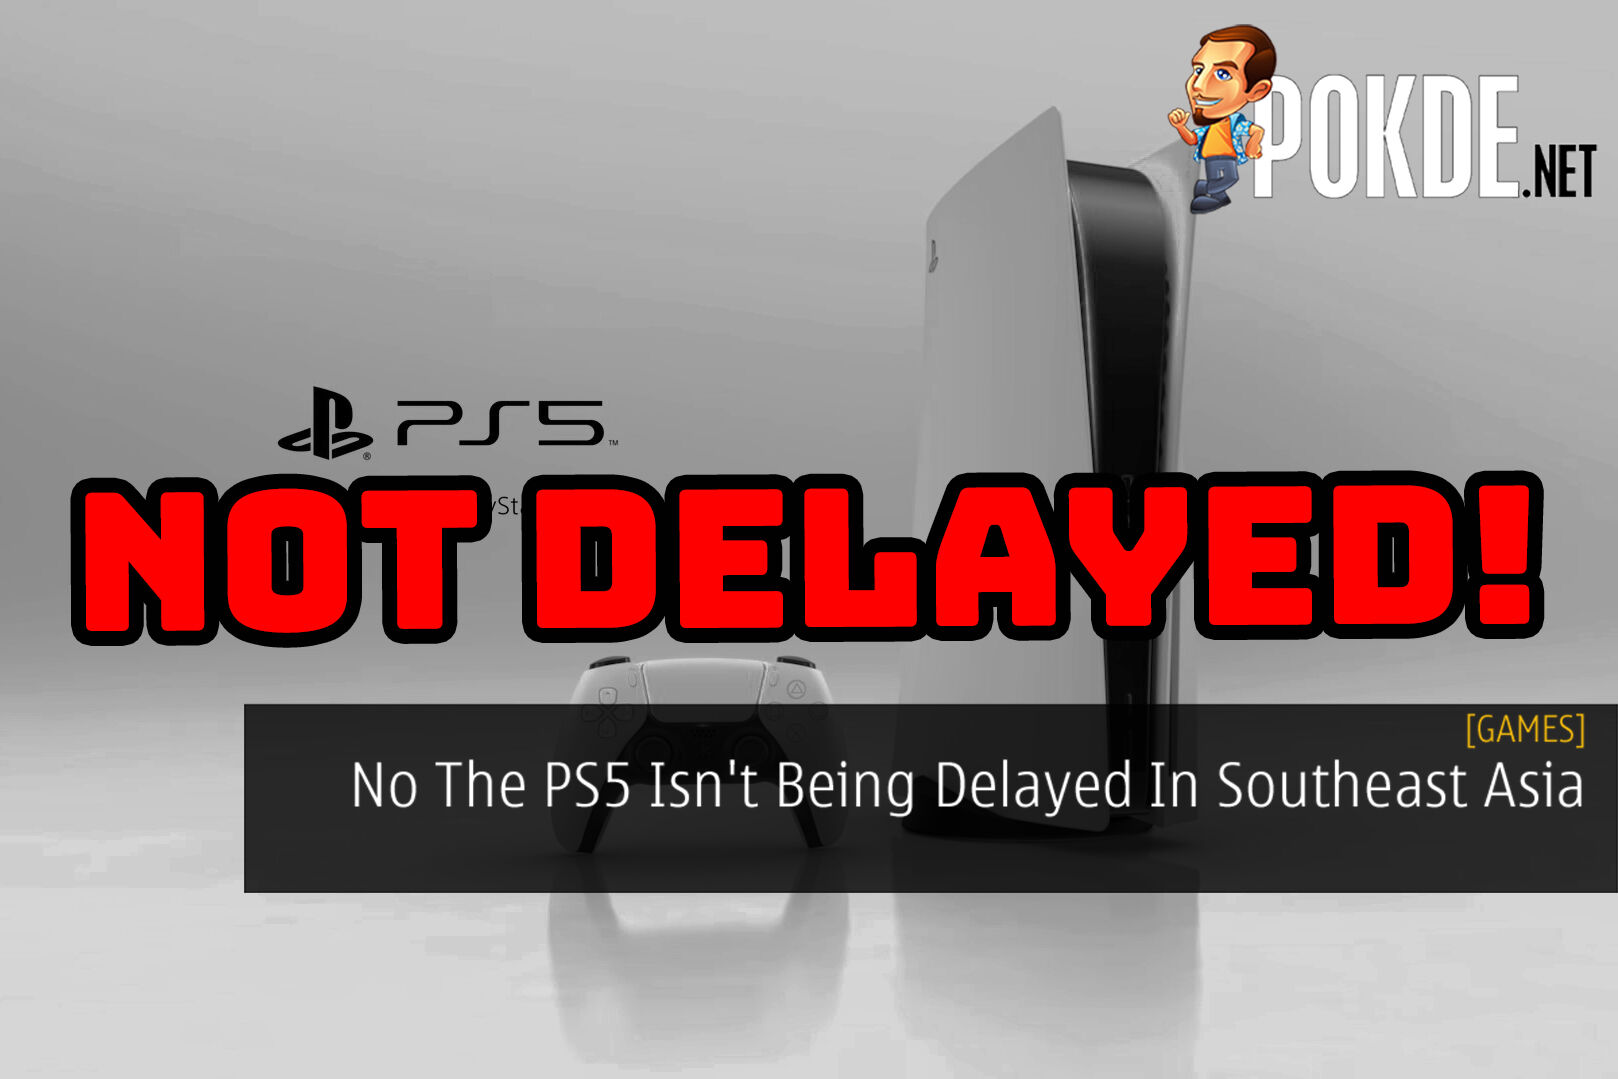 PS5 Southeast Asia Not Delayed cover copy